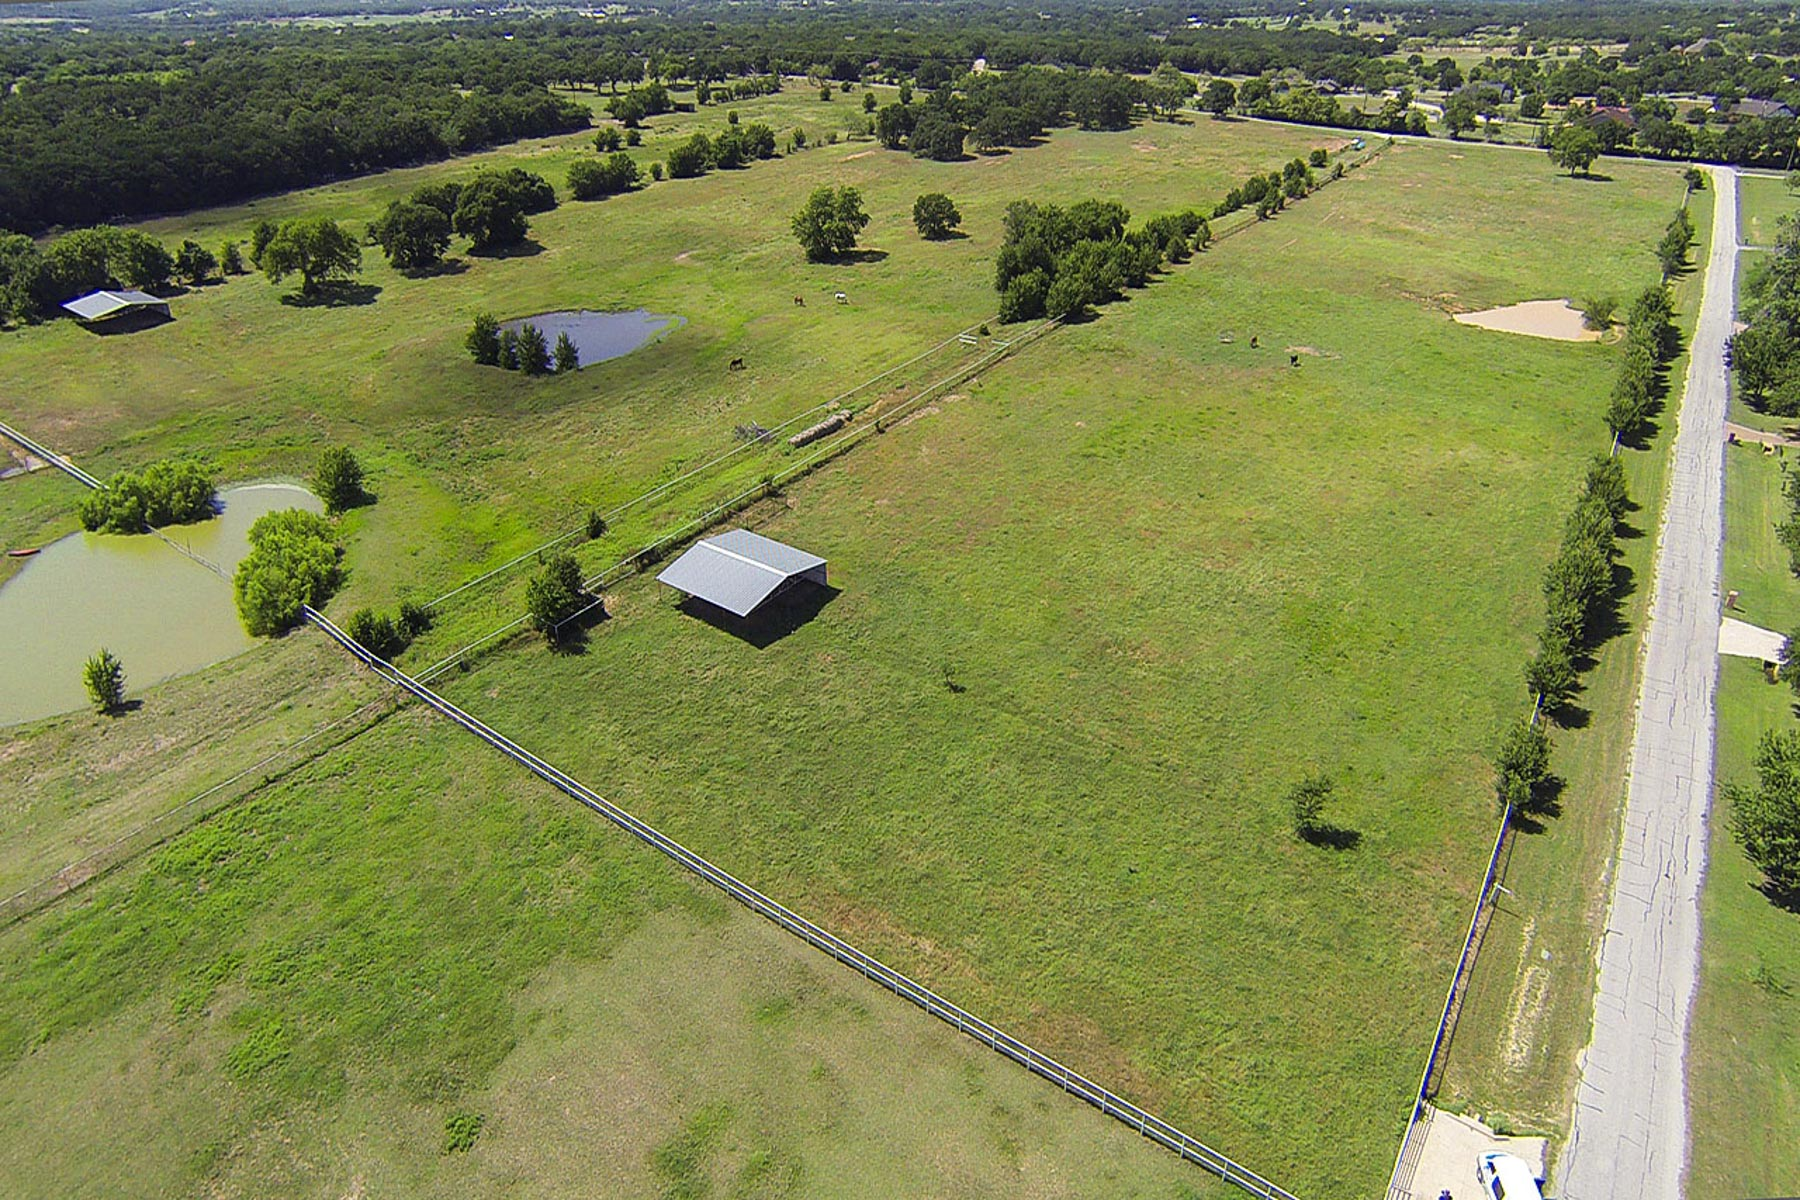 Land for Sale at Pristine 2 Acre Lot 1060 Rockgate Rd S Bartonville, Texas, 76226 United States